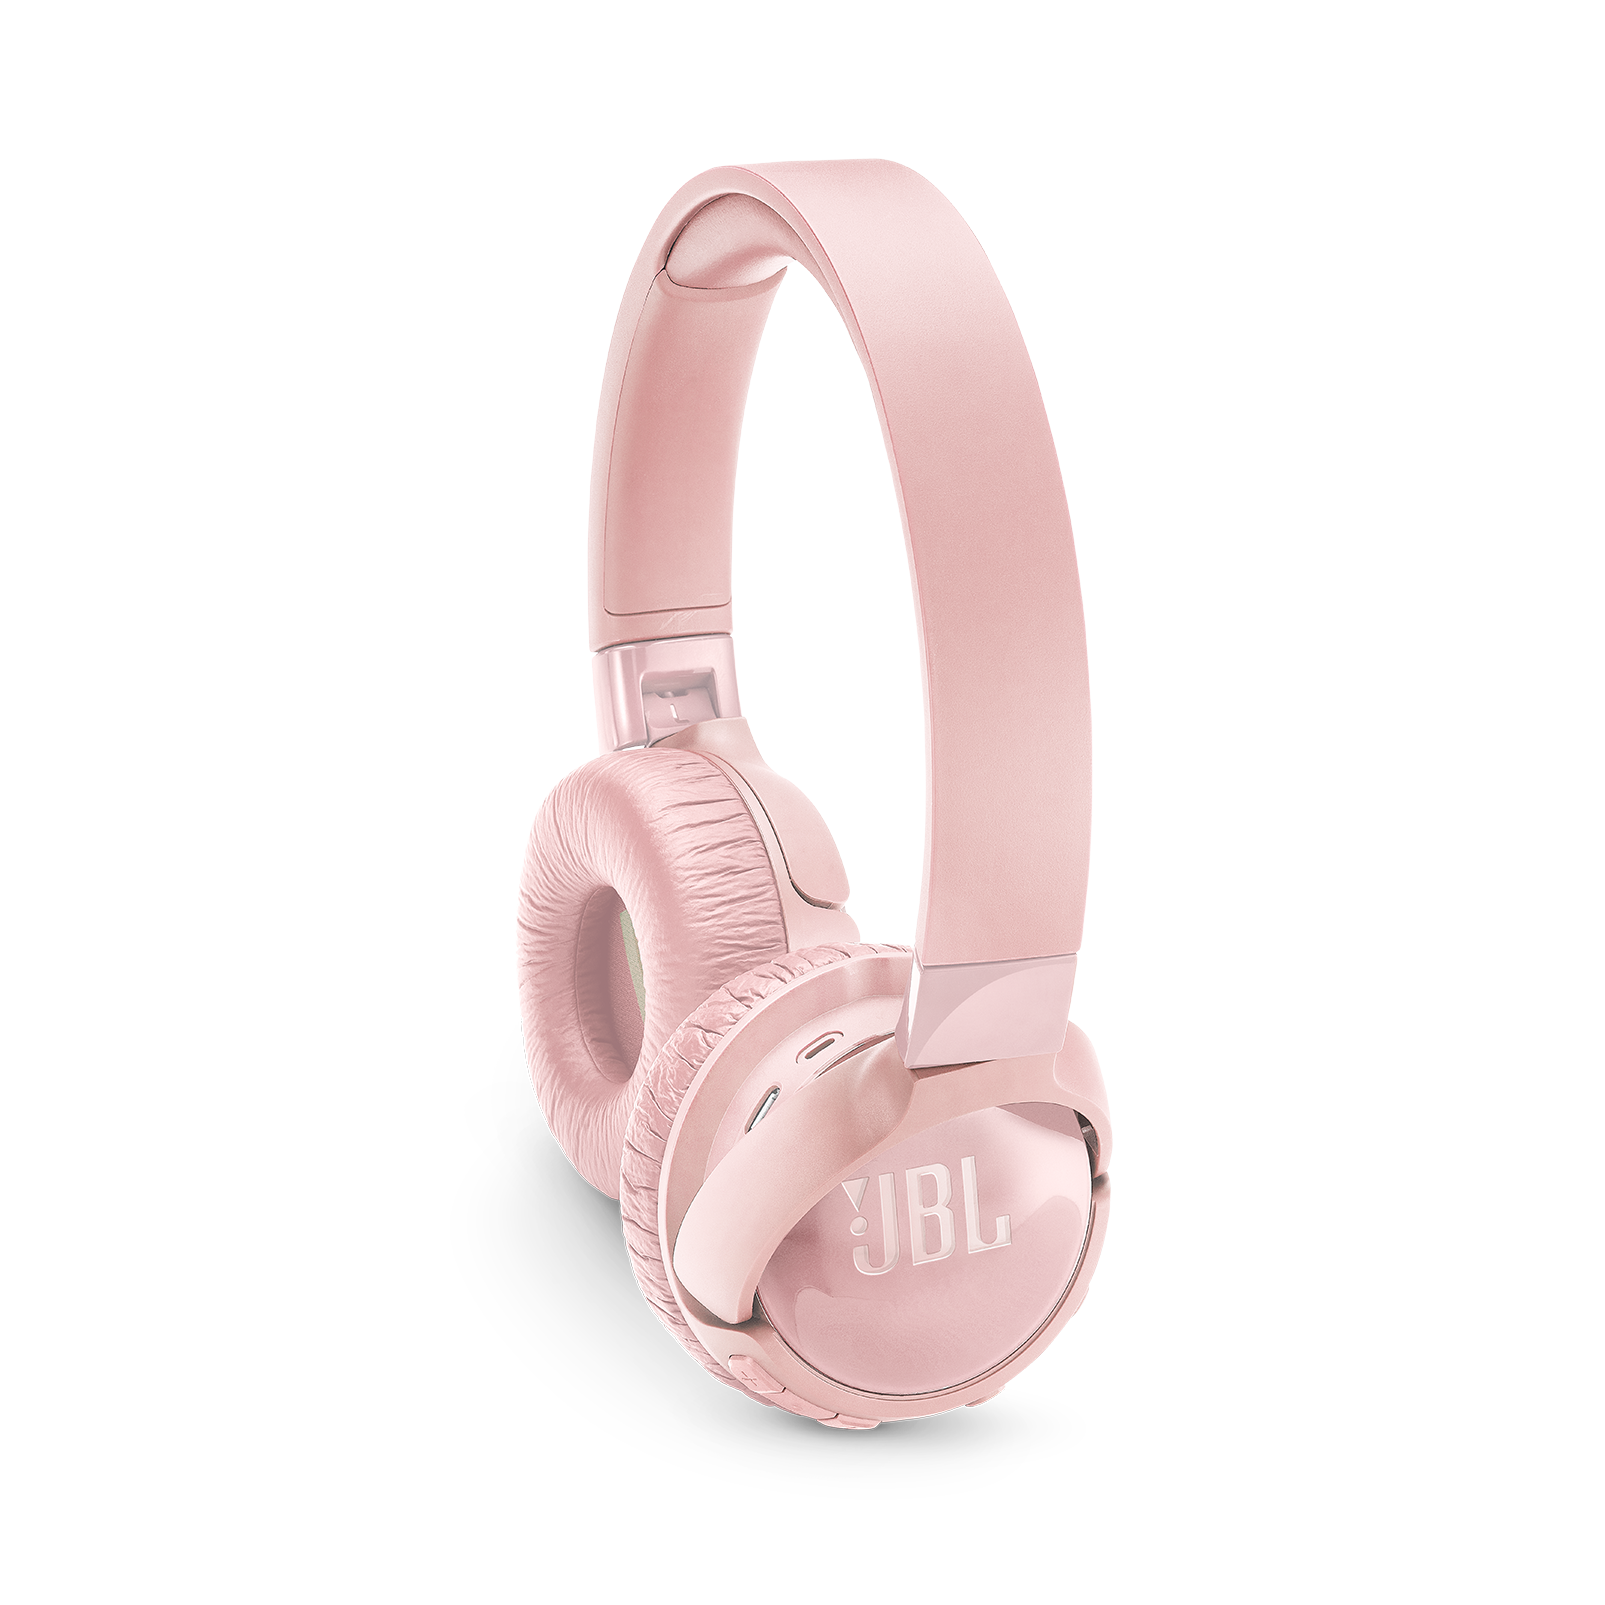 JBL TUNE 600BTNC - Pink - Wireless, on-ear, active noise-cancelling headphones. - Detailshot 1